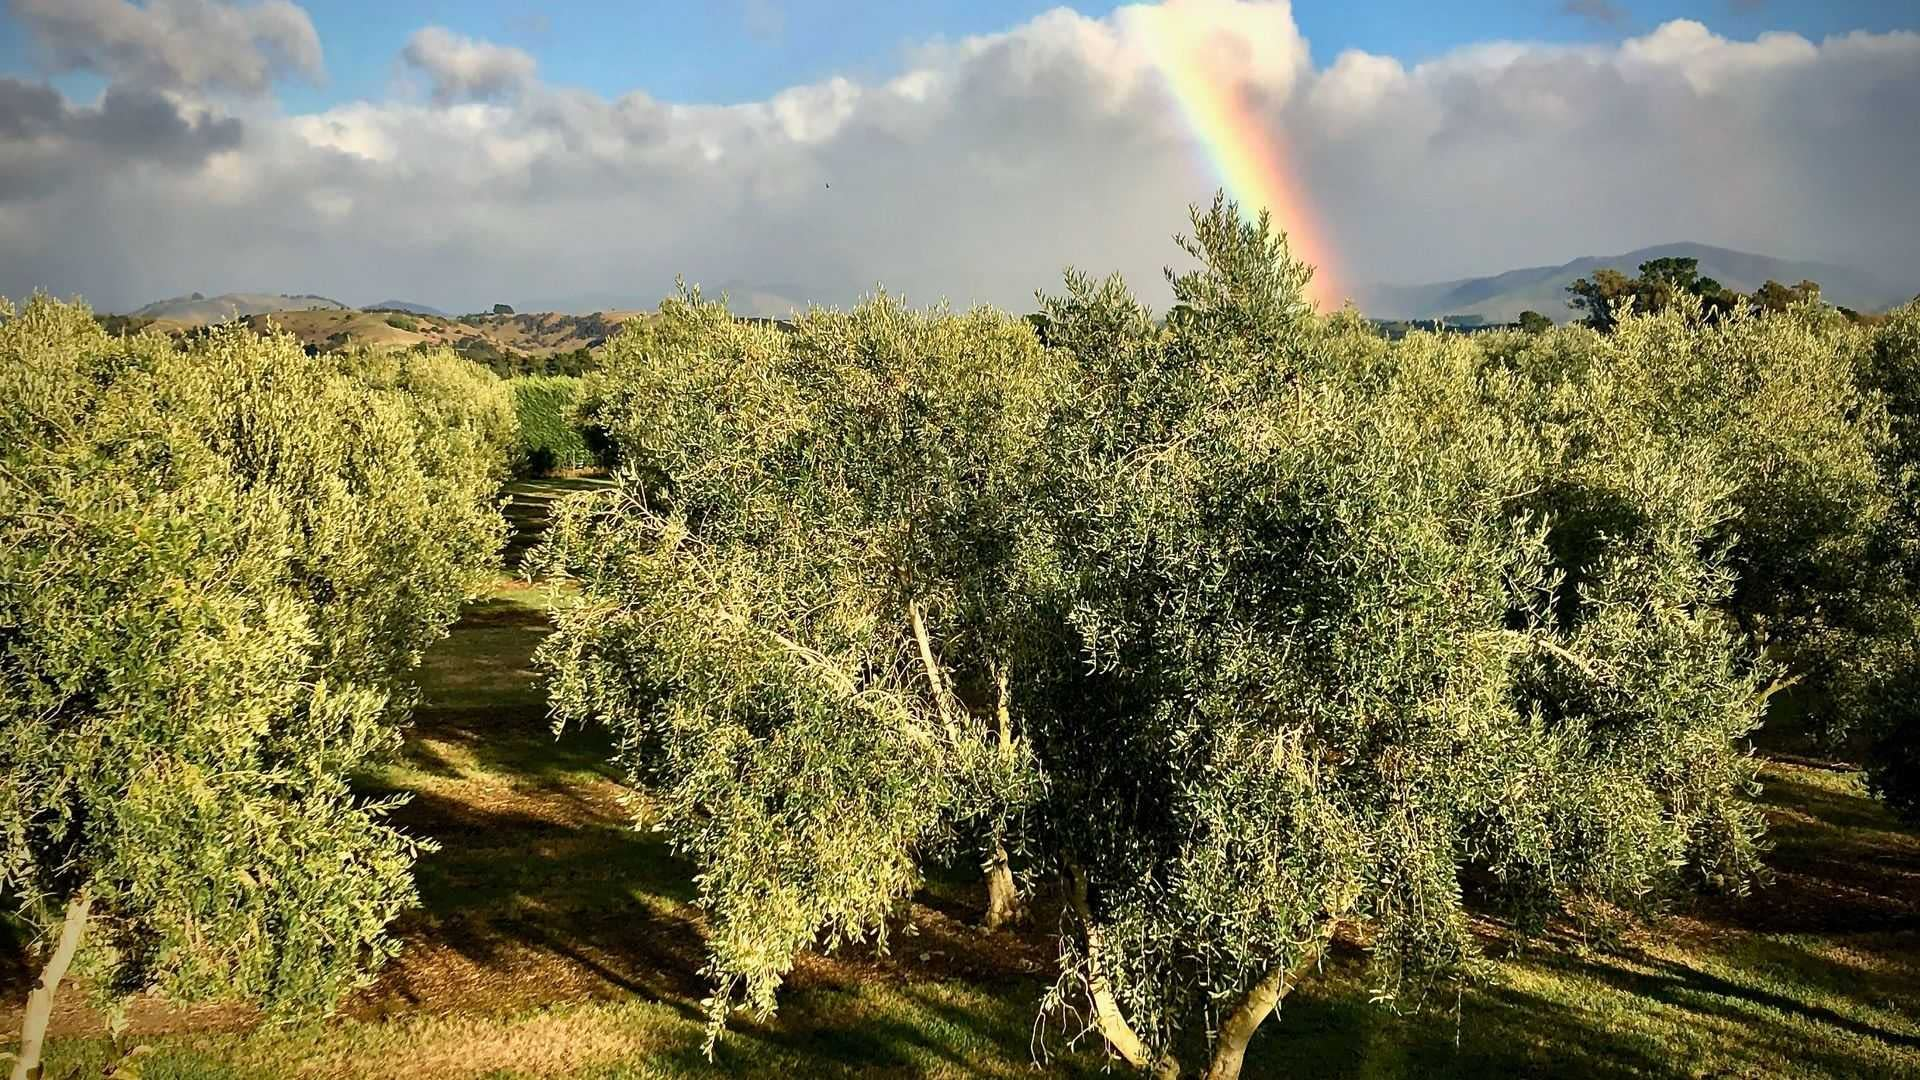 australia-and-new-zealand-business-production-producers-in-new-zealand-celebrate-bumper-harvest-olive-oil-times